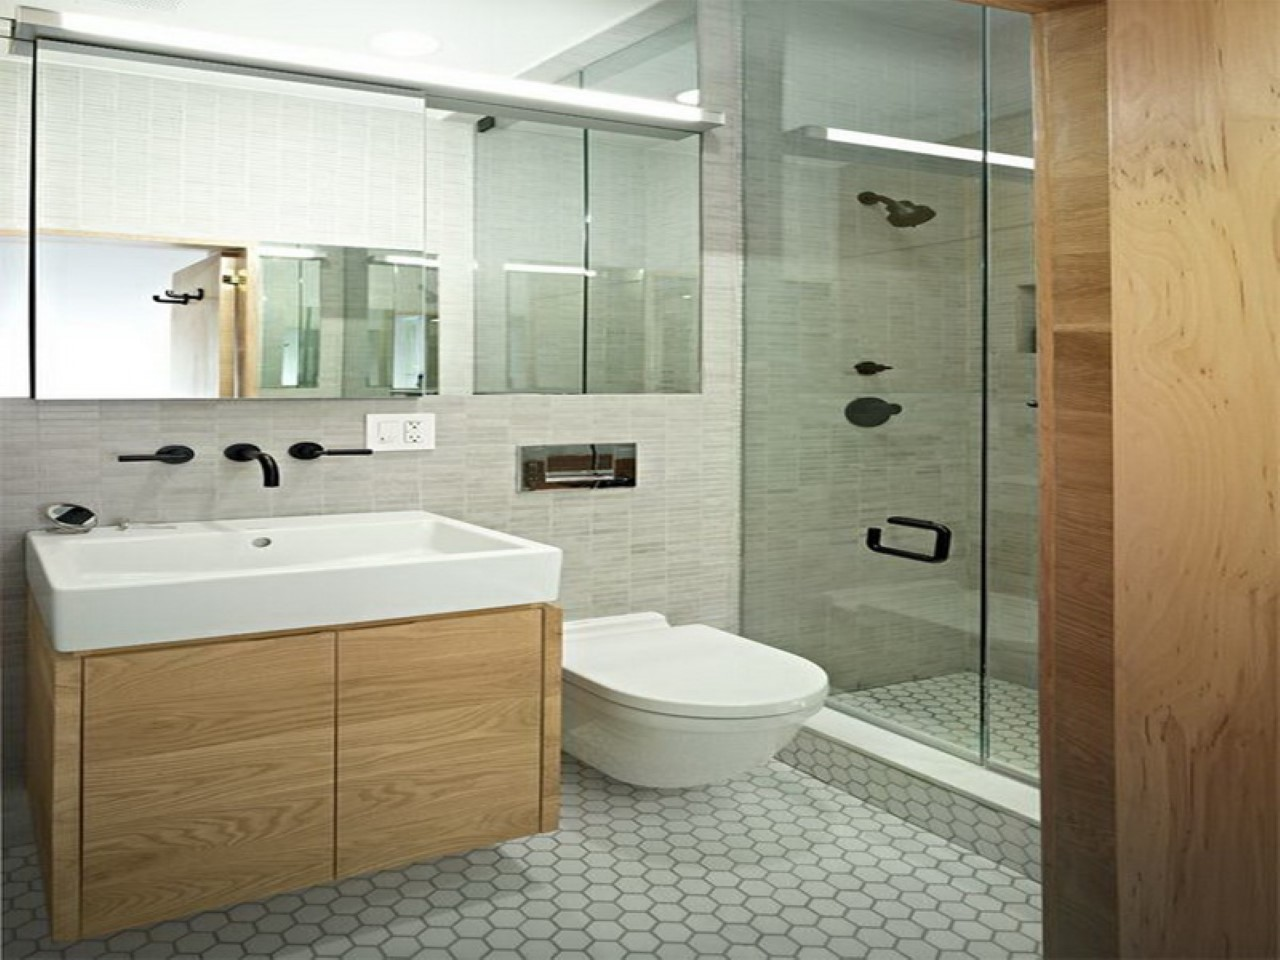 Bathroom-Floating-Flush-And-Clear-Glass-Shower-Door-Feat-Light-